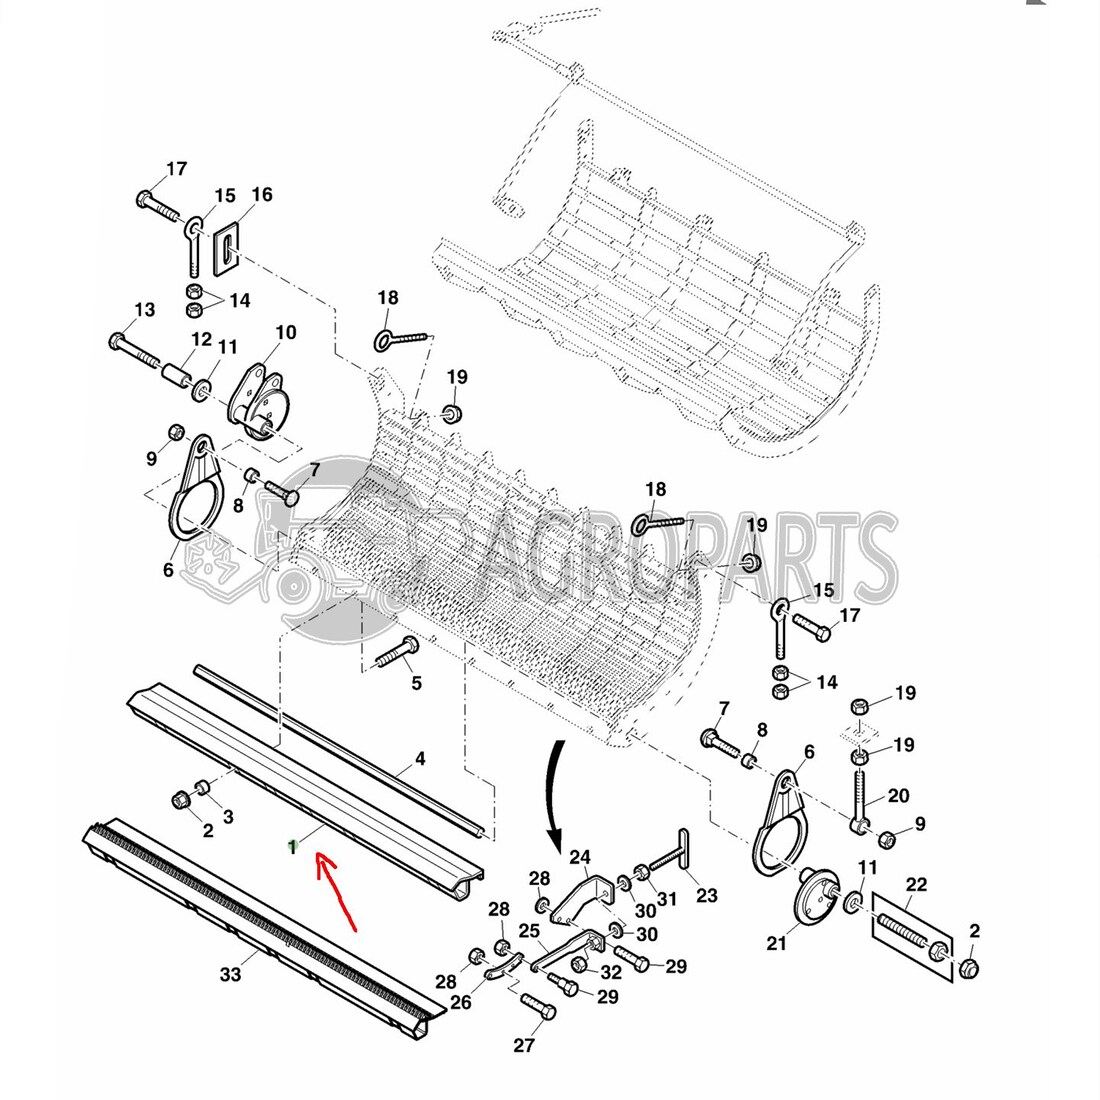 Separatuion grate assembly angle for John Deere combines